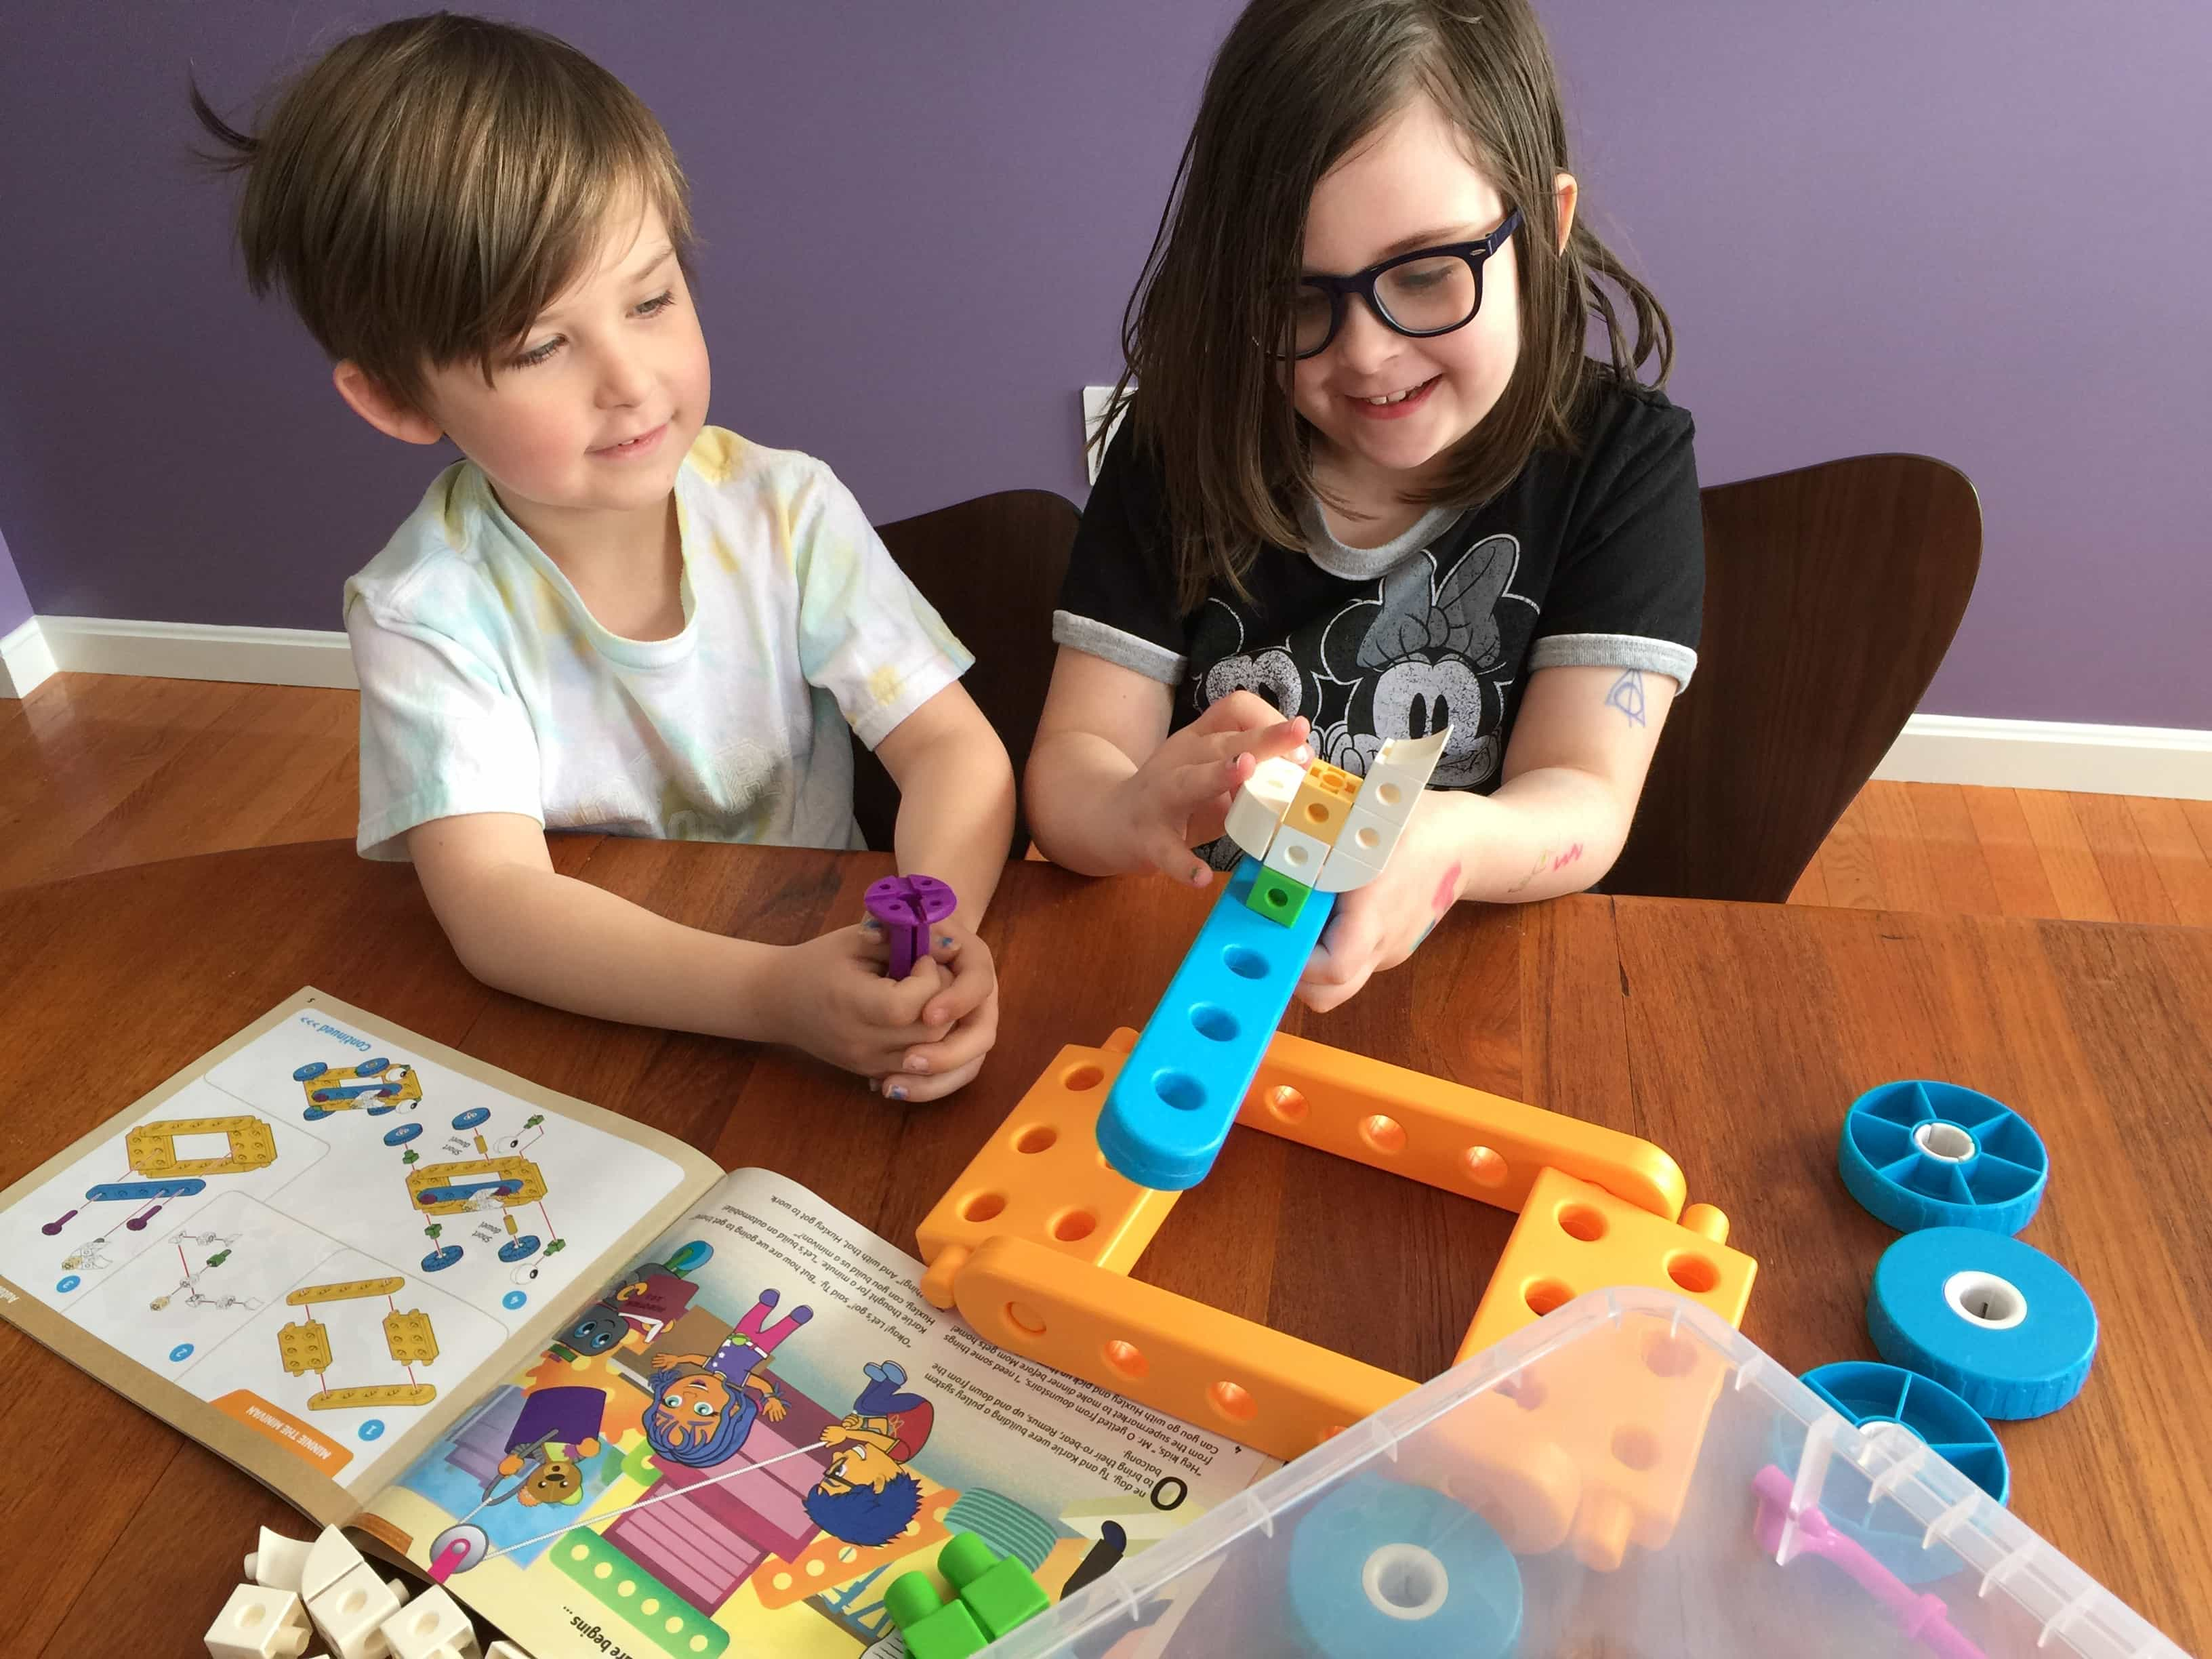 Amazon STEM Toy Club March 2017 Subscription Box Review